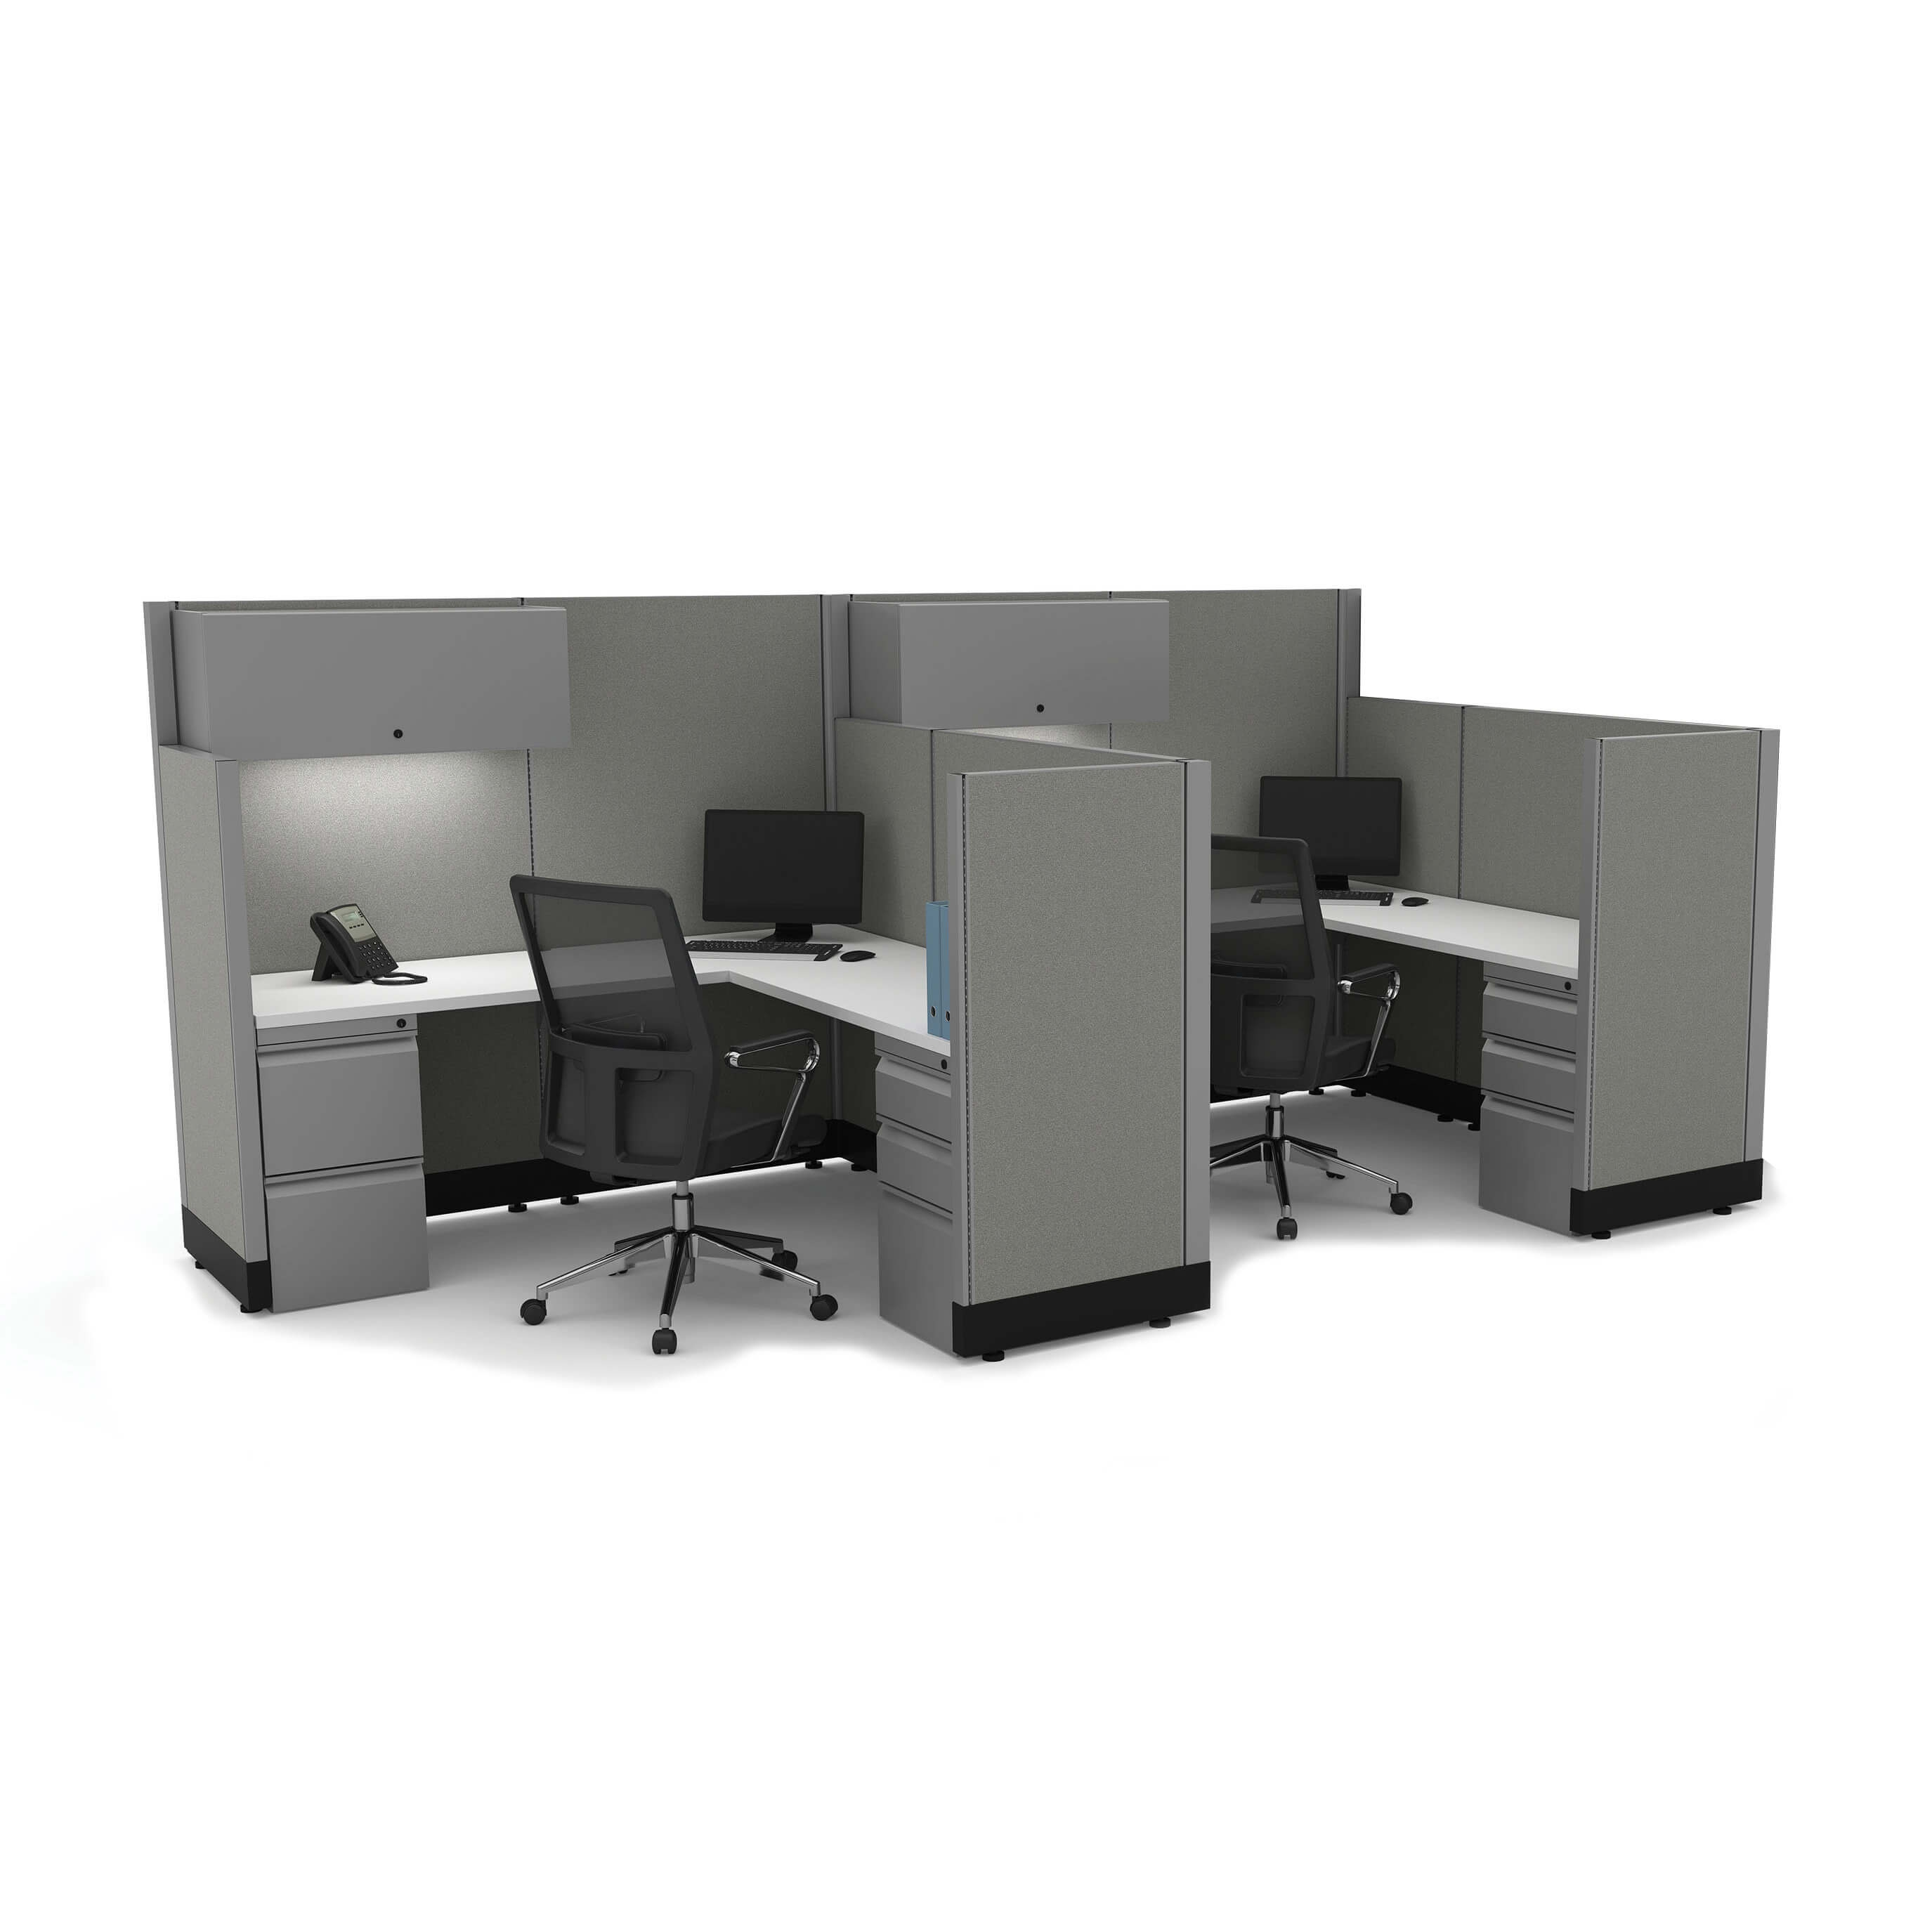 modular-office-furniture-modern-office-furniture-1-2-3-4.jpg